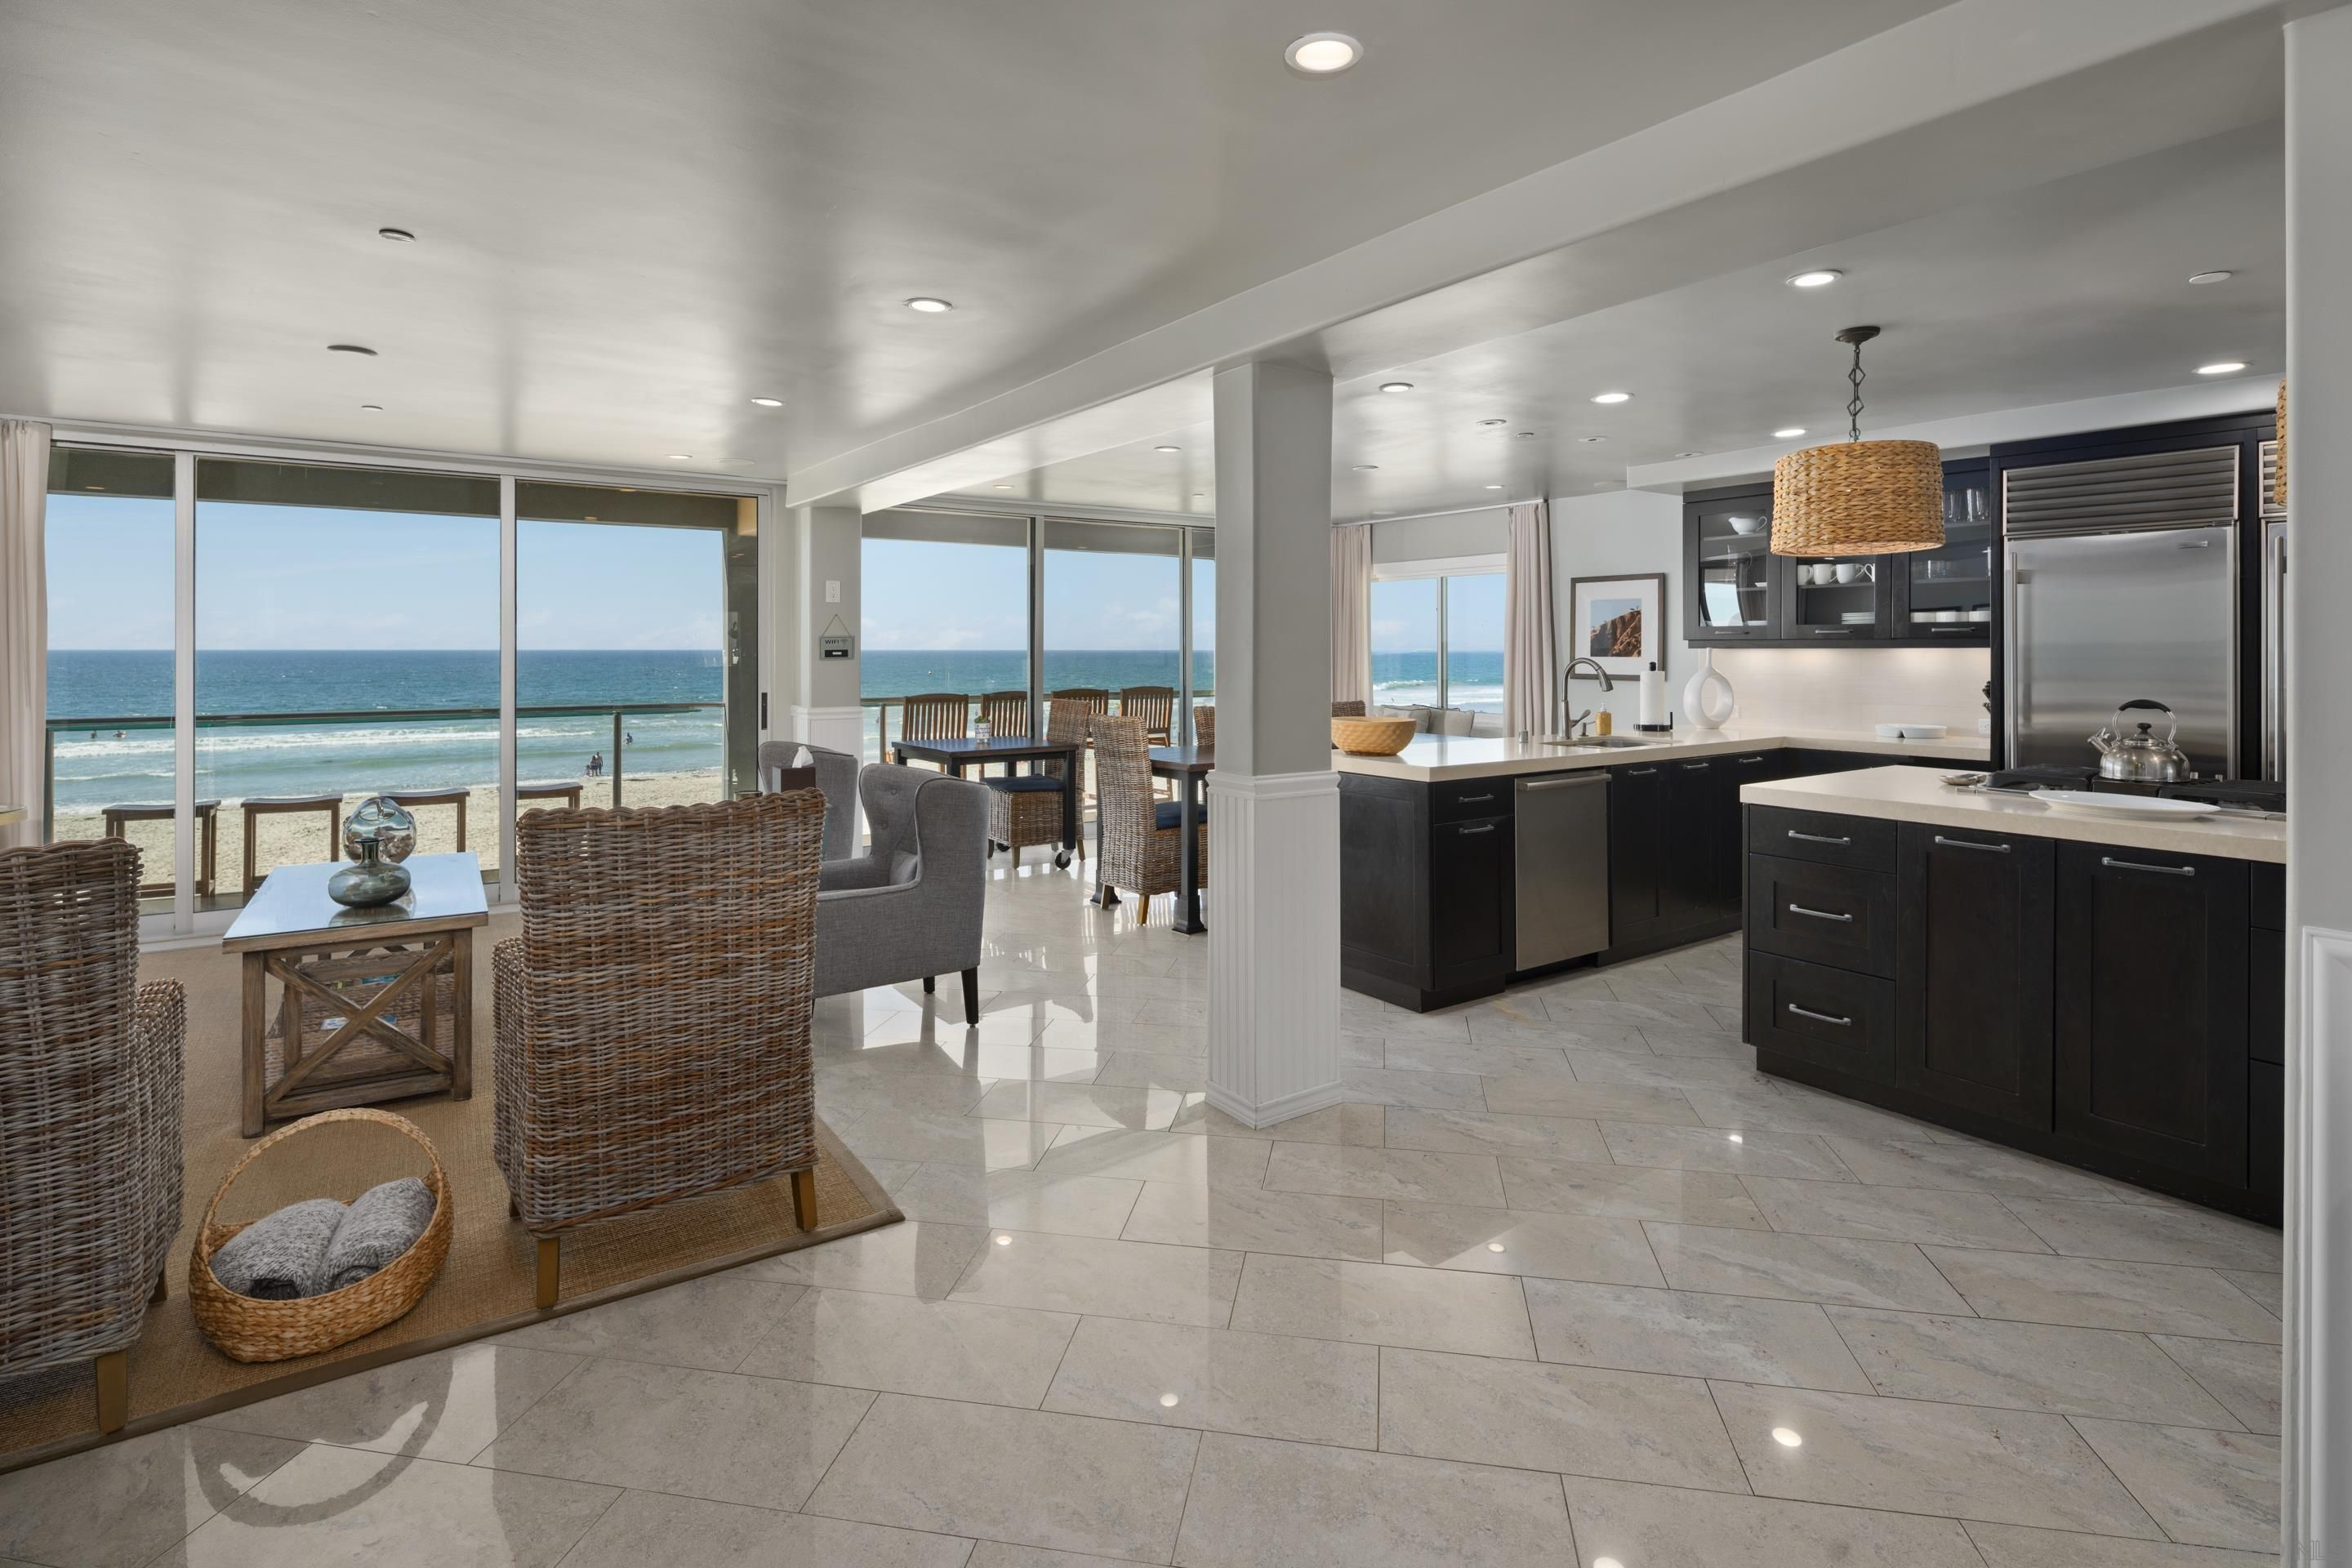 Main Photo: MISSION BEACH Condo for sale : 5 bedrooms : 3607 Ocean Front Walk 9 and 10 in San Diego